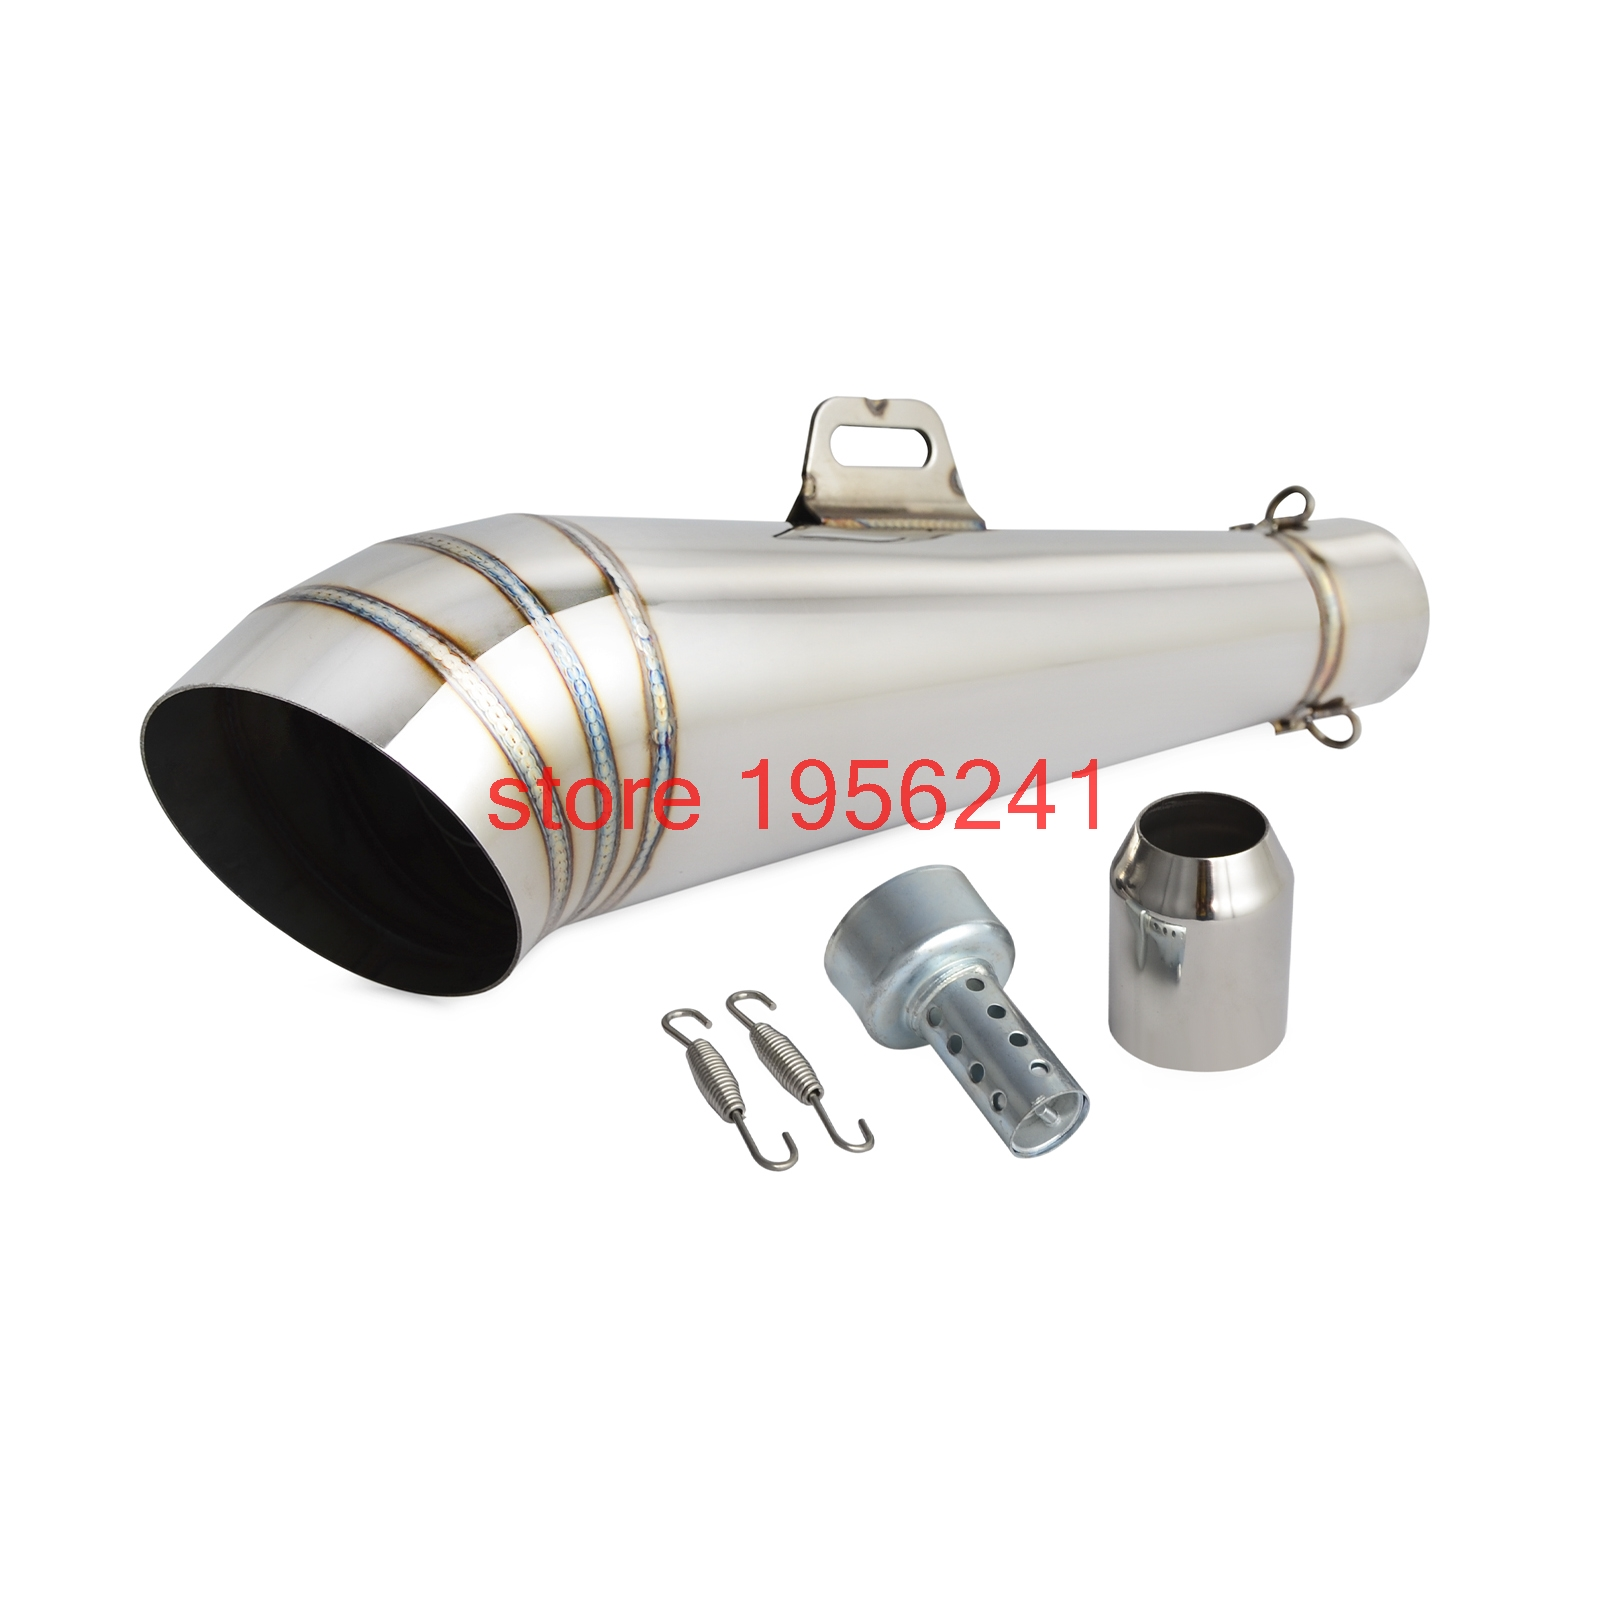 Mooreaxe Motorcycle Exhaust Muffler With Removable DB Killer Dirt Bike Street Bike Scooter ATV Tail Pipe